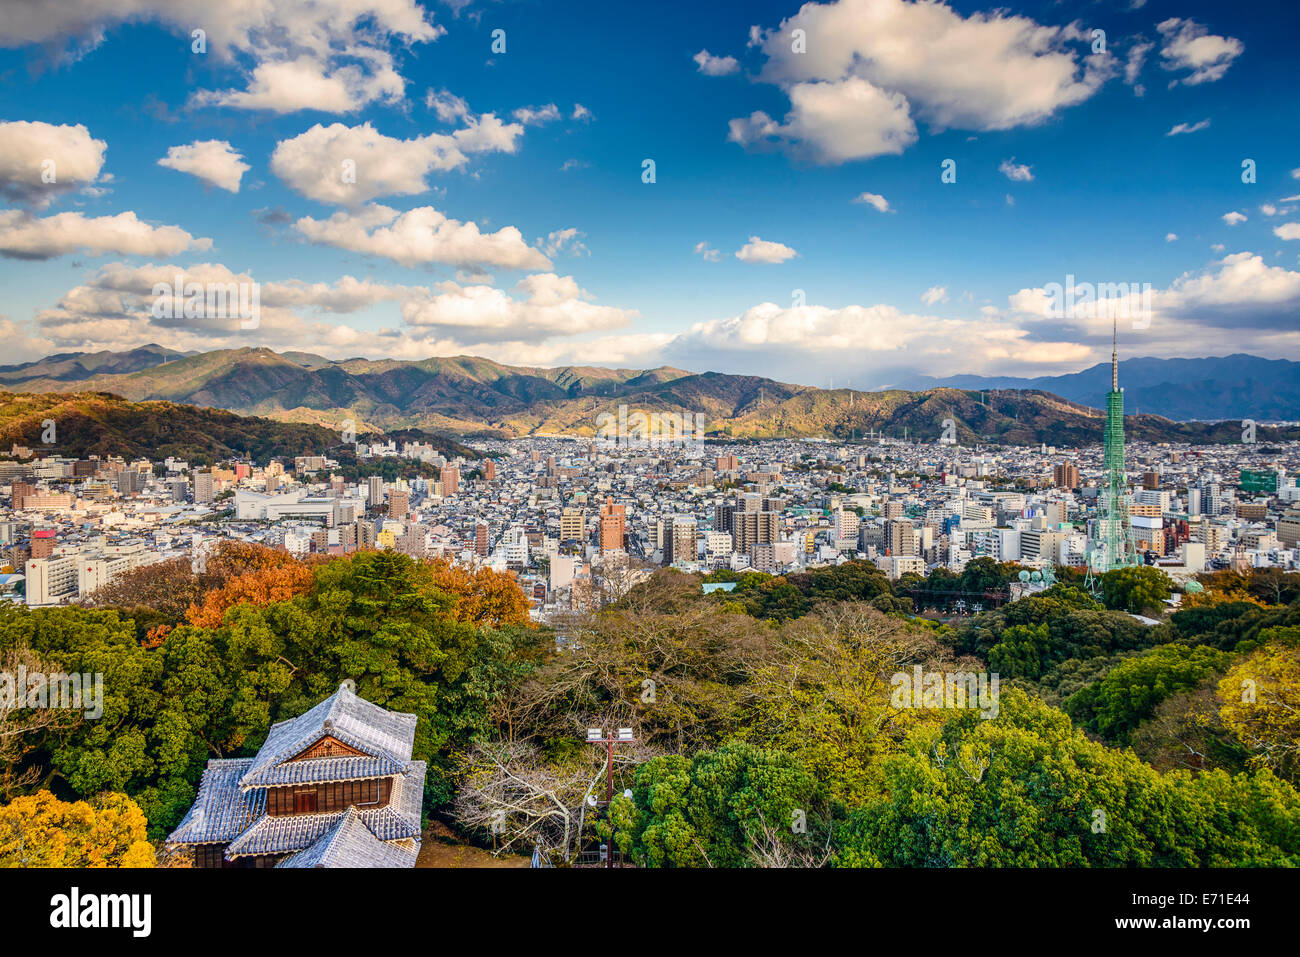 Matsuyama, Japan downtown cityscape. - Stock Image